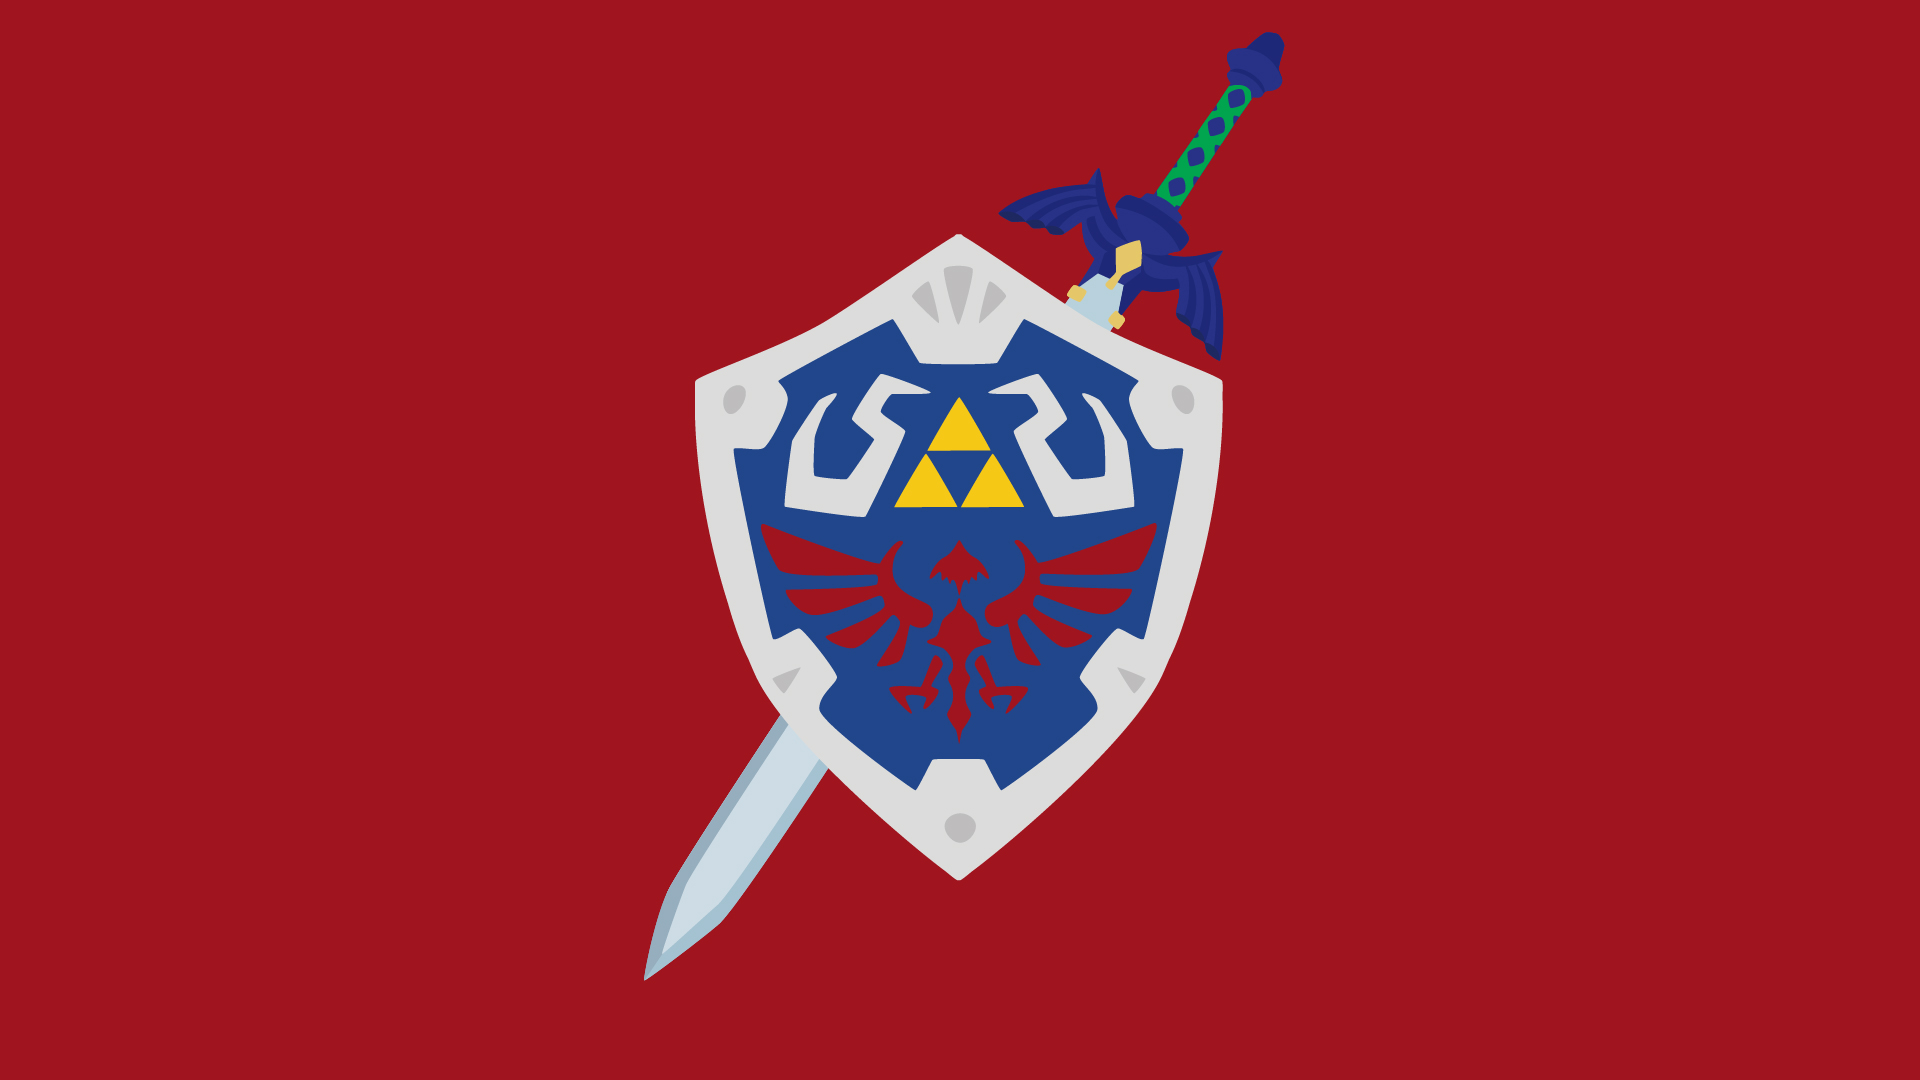 Image hylian shield and master sword by krukmeister d4zdlkdg hylian shield and master sword by krukmeister d4zdlkdg voltagebd Images